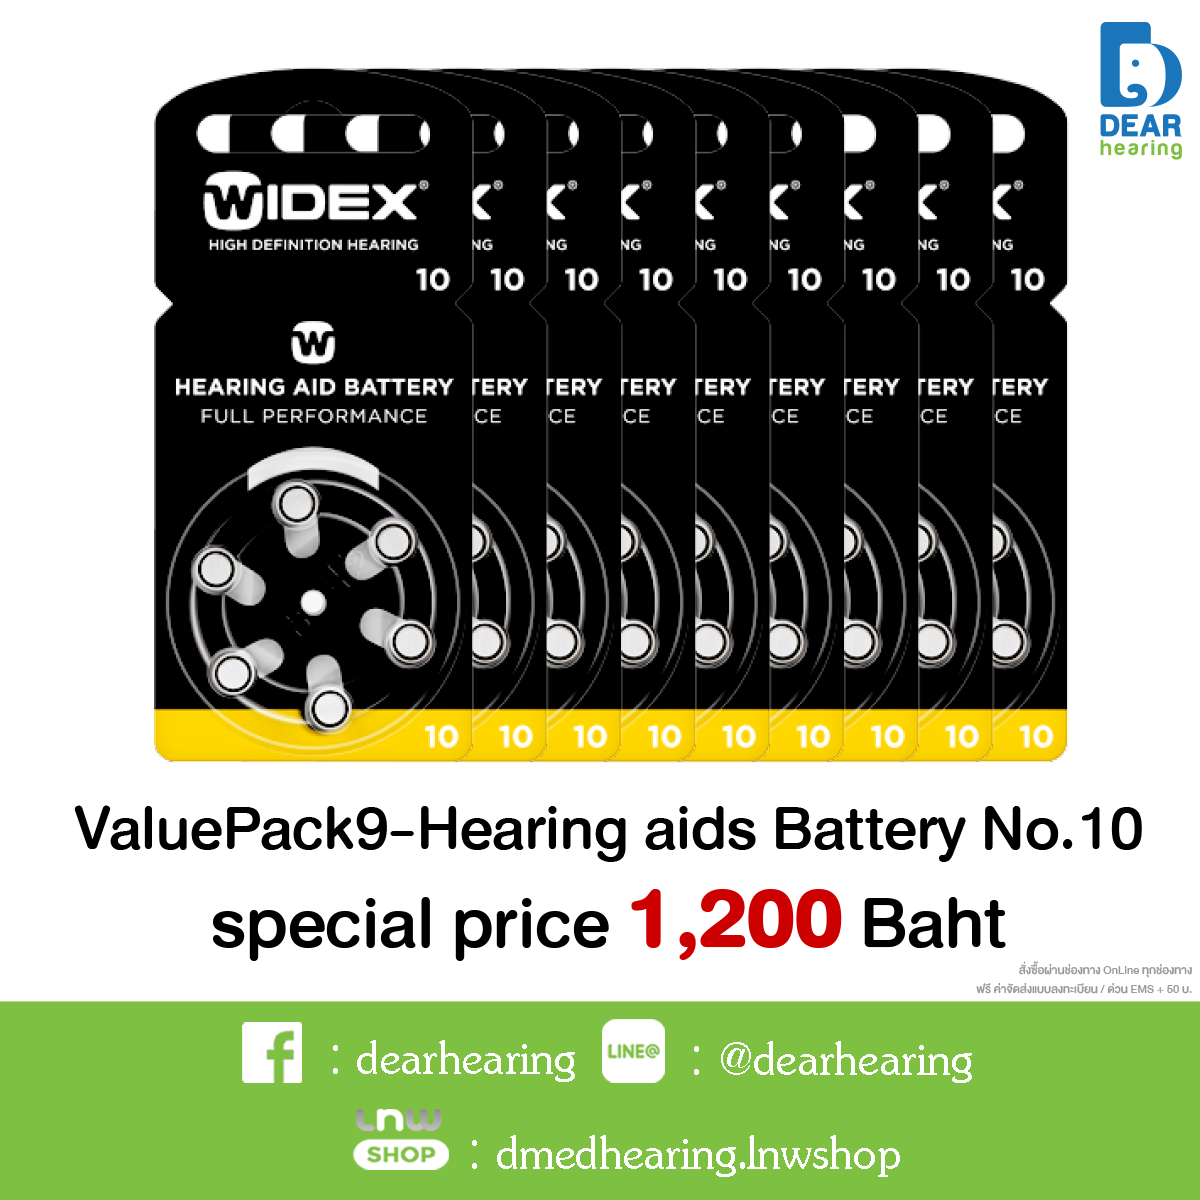 ValuePack9-Hearing aids Battery No.10